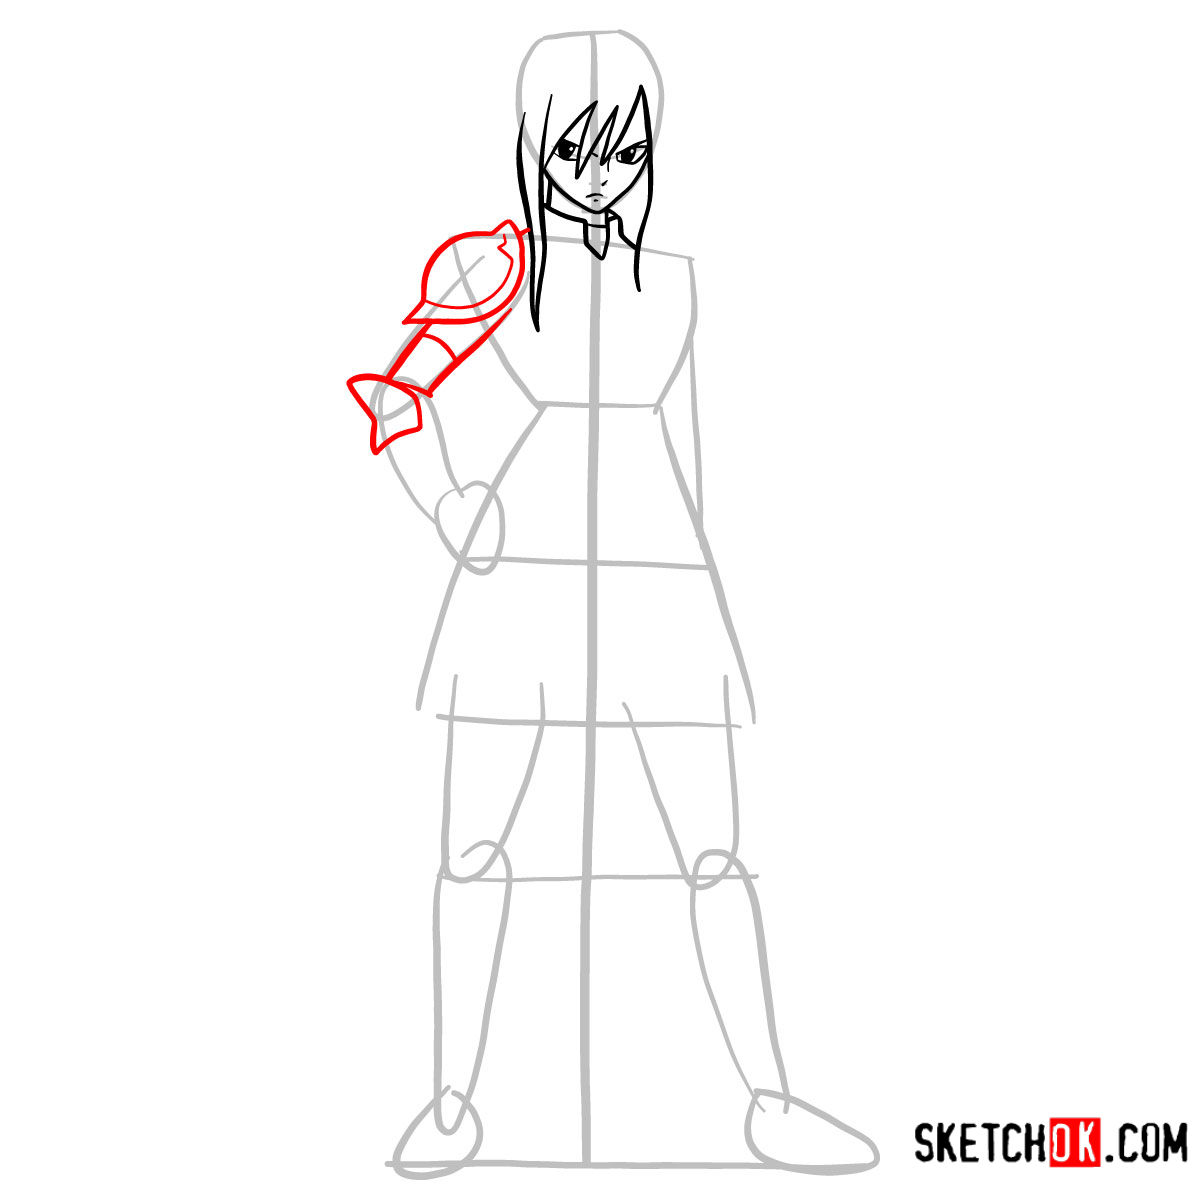 15 steps drawing tutorial of Erza Scarlet (fairy tail) - step 06